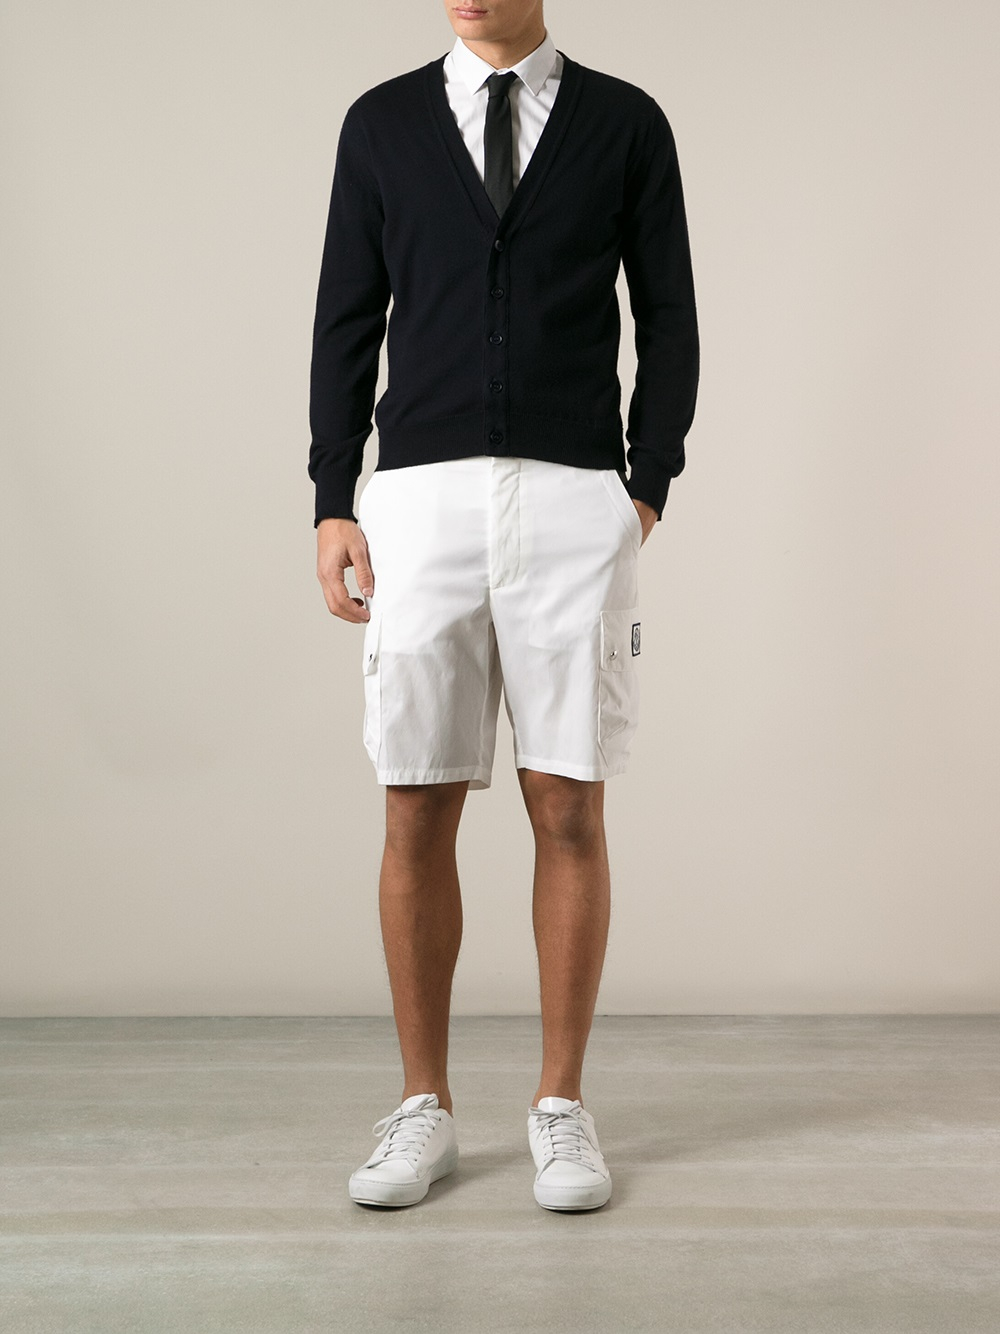 Men's shorts have different functions depending on their style. Elegant bermudas can break away from excessive formality and are perfect for warmer days. Cotton pieces with adjustable waists provide extra comfort and an added sporty touch.